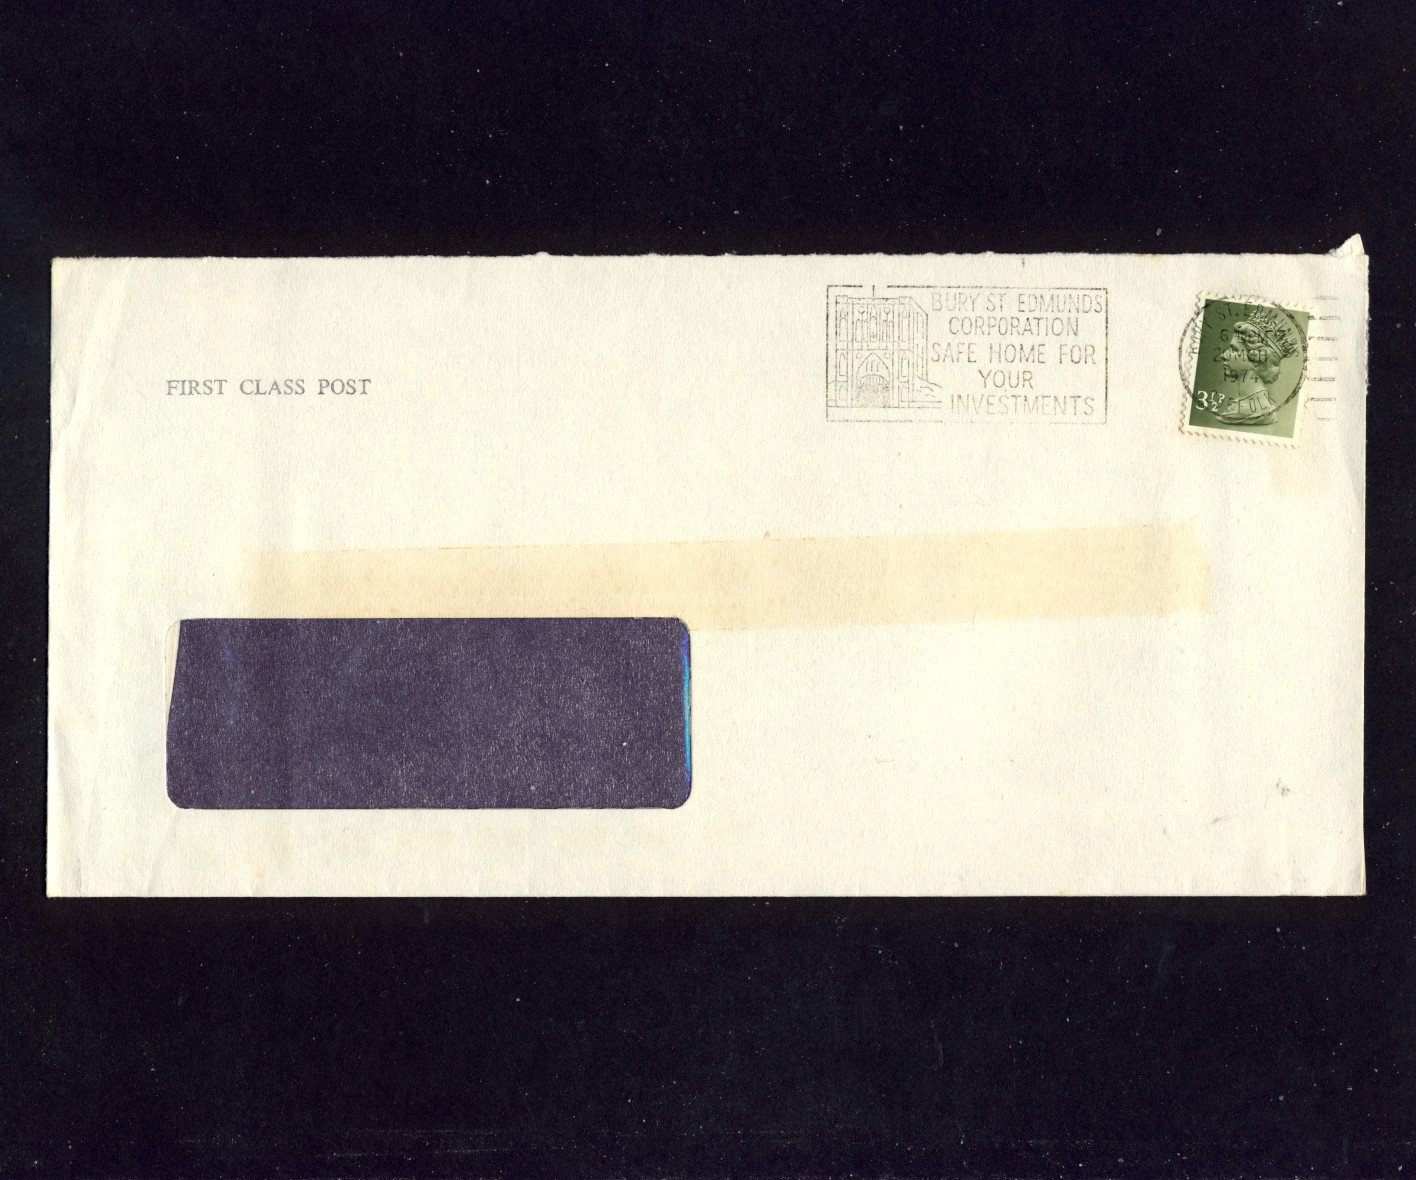 Slogan Postmark - BURY ST EDMUNDS CORPORATION Safe Home For Your Investments 1974 on used envelope